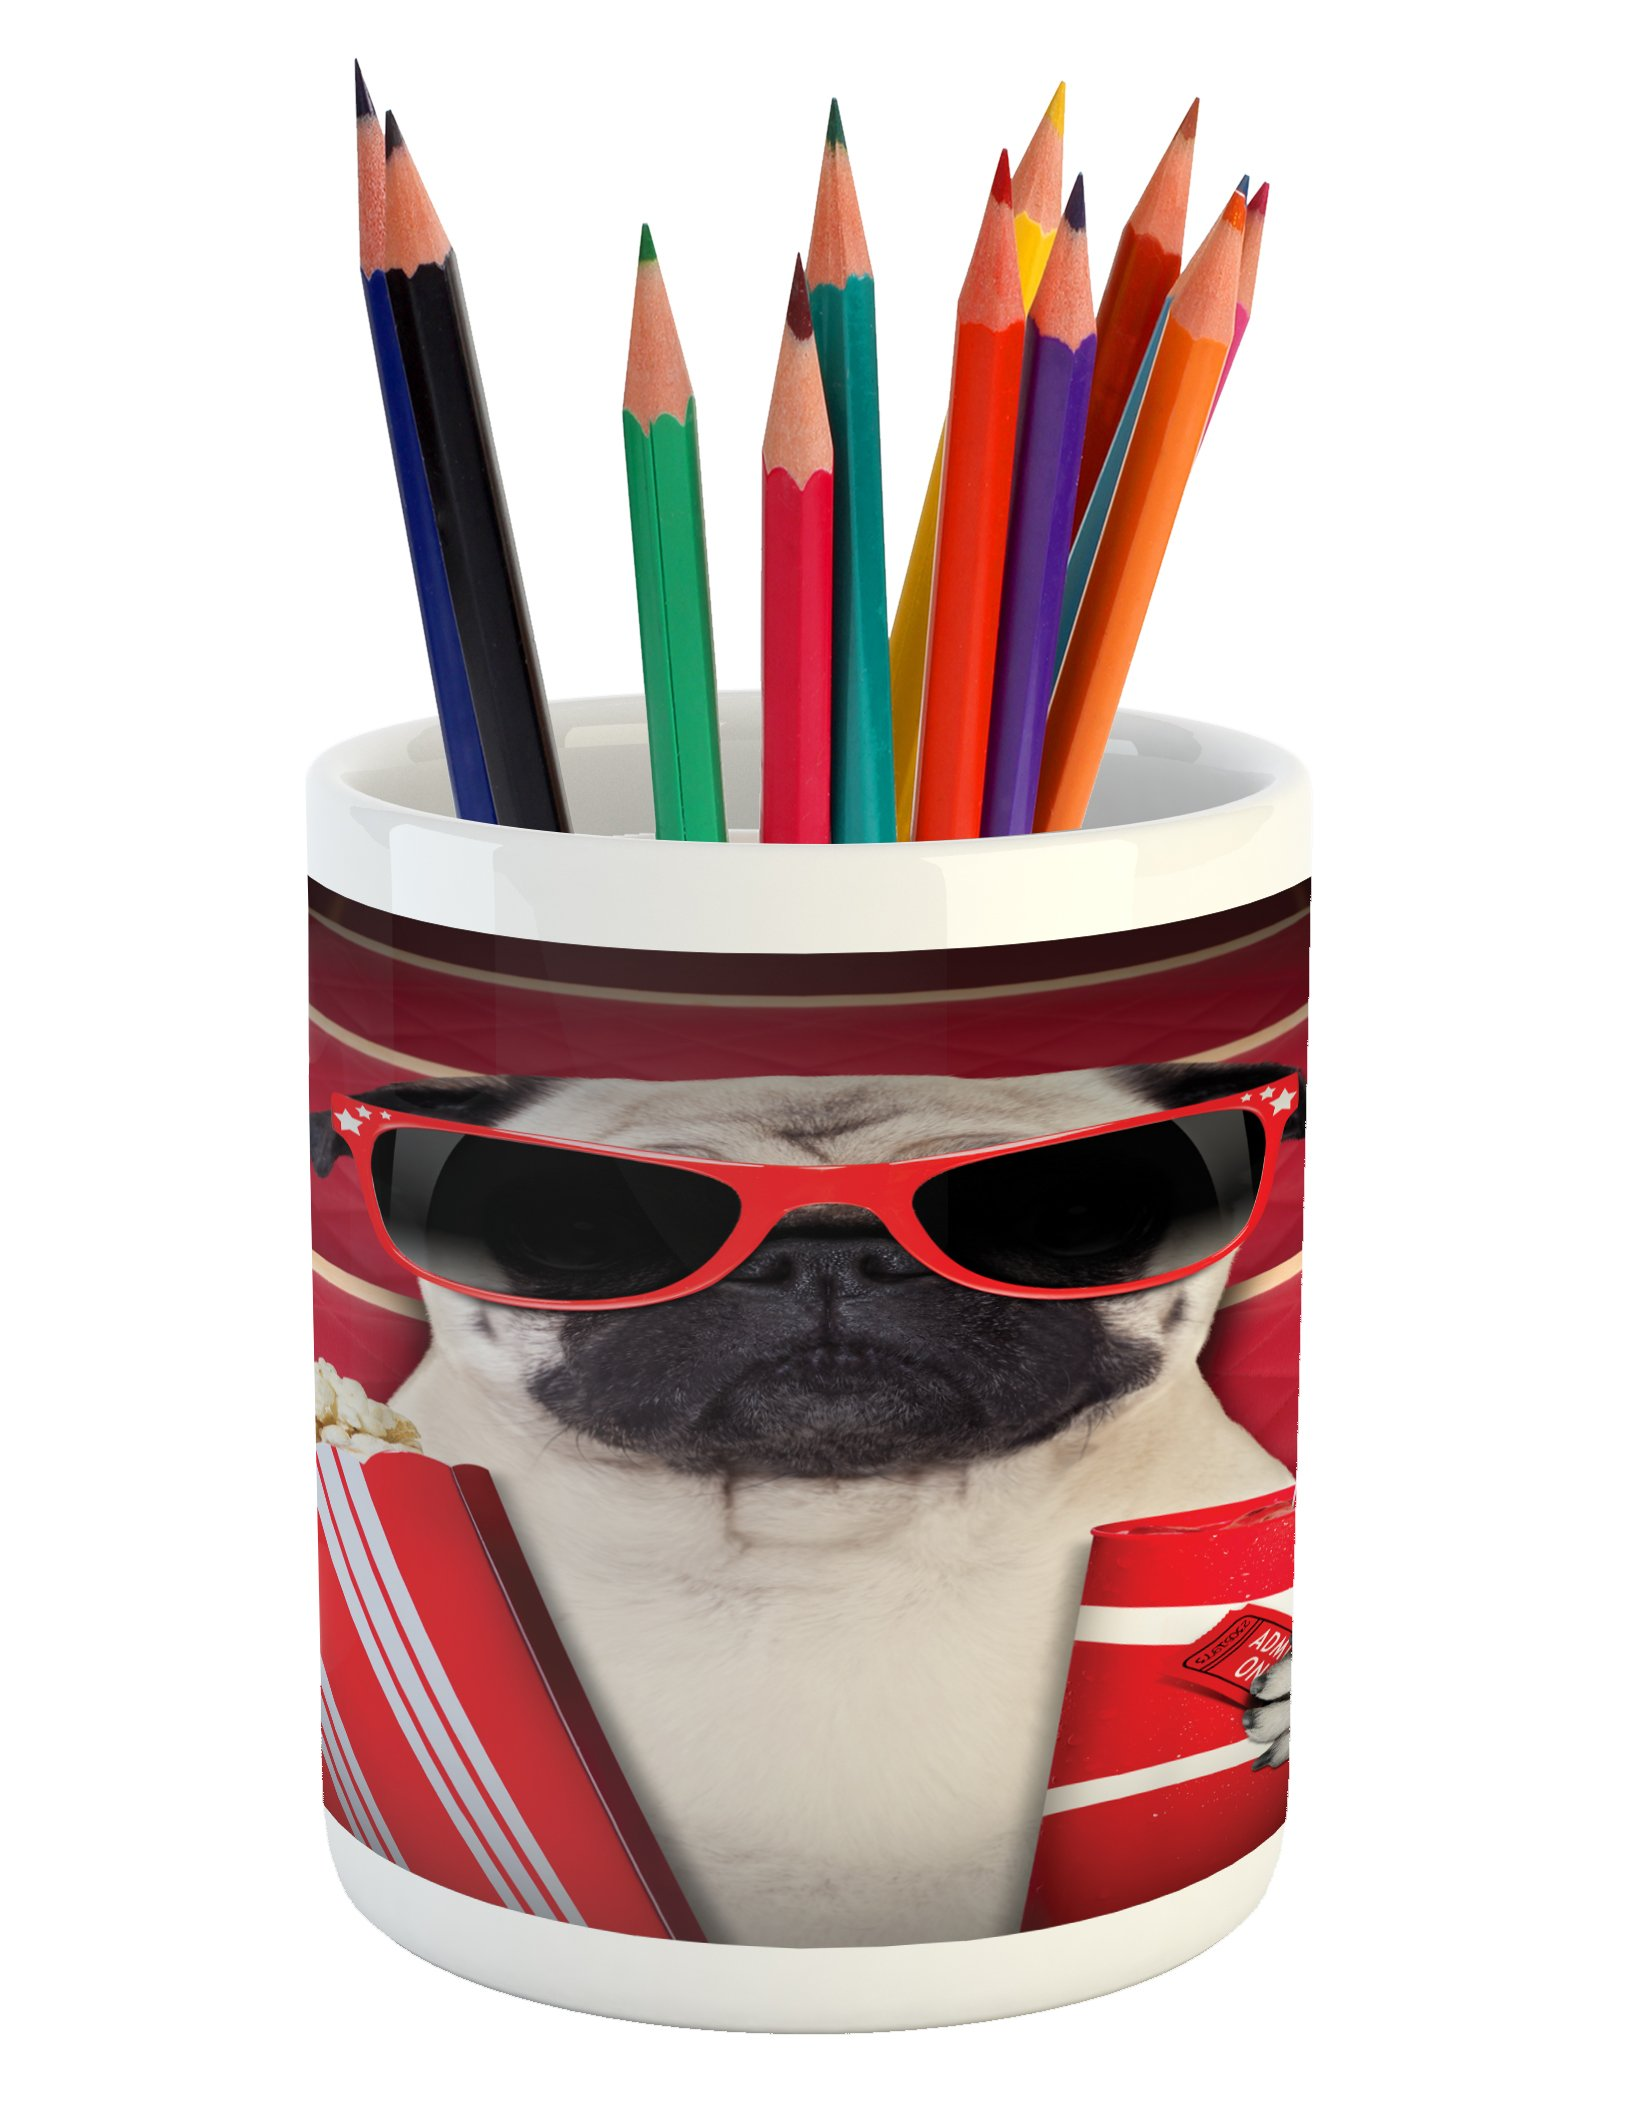 Ambesonne Pug Pencil Pen Holder, Funny Dog Watching Movie Popcorn Soft Drink and Glasses Animal Photograph Print, Printed Ceramic Pencil Pen Holder for Desk Office Accessory, Red Cream Ruby